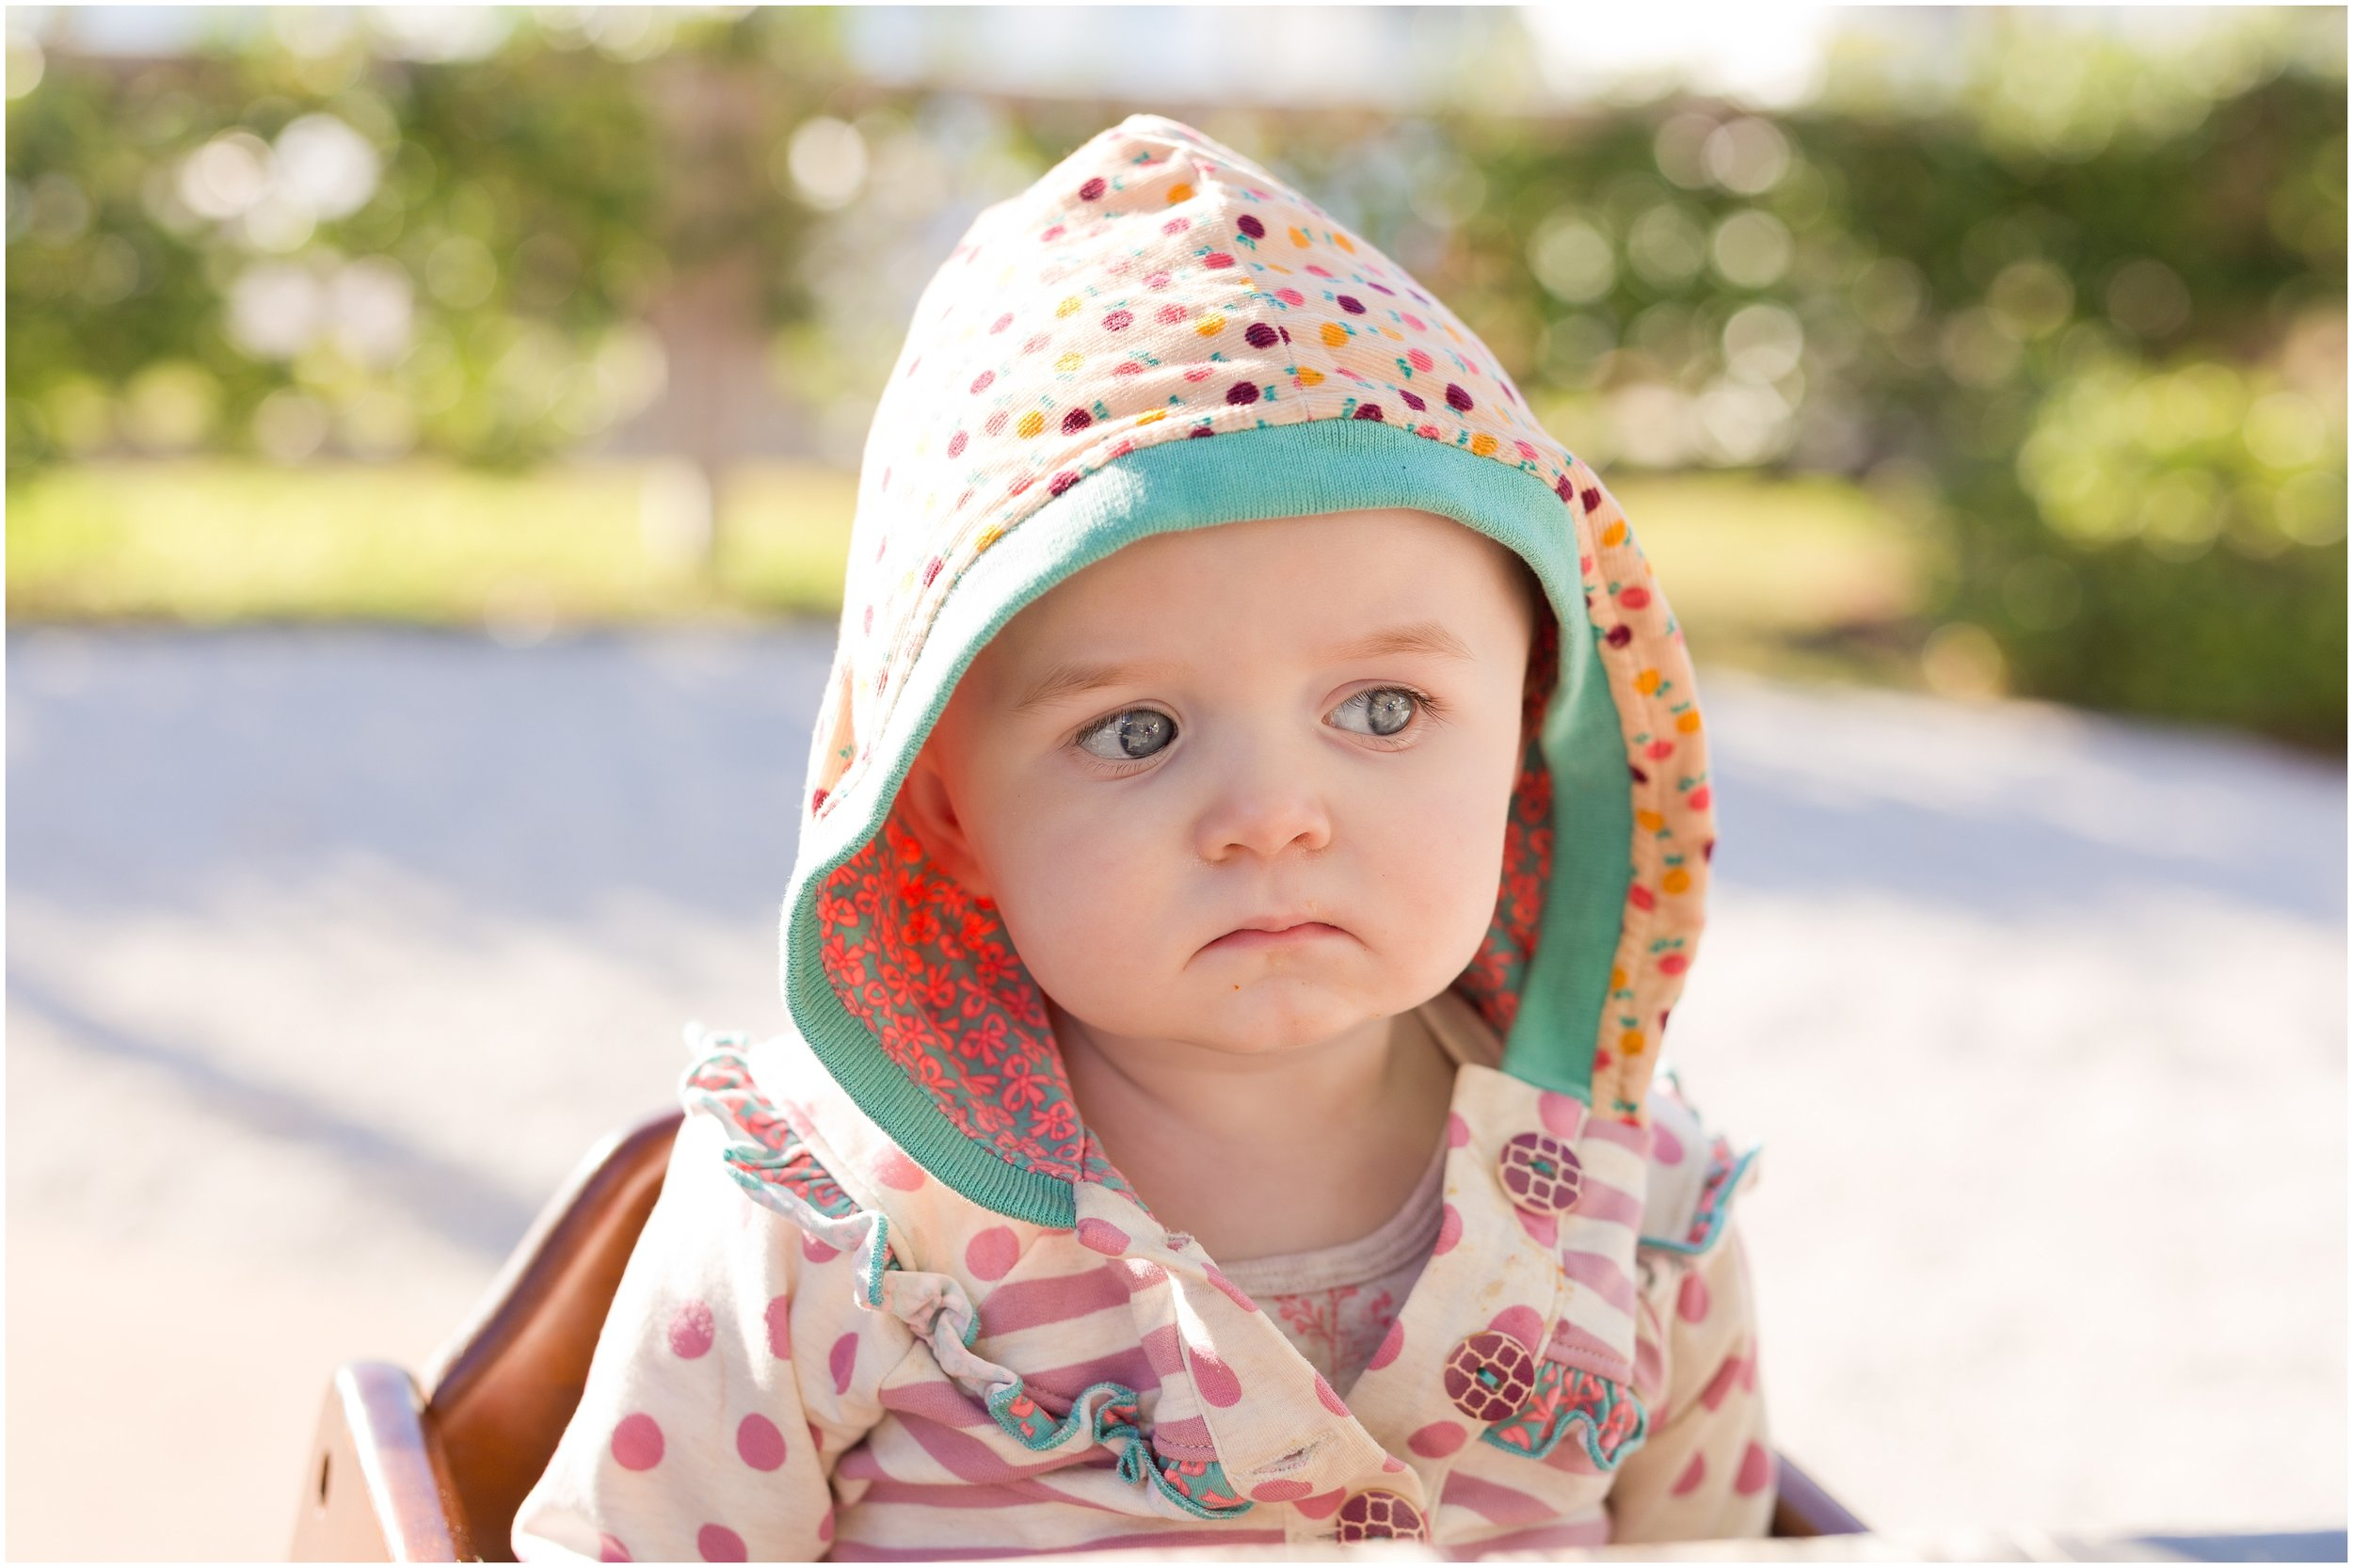 baby girl with funny skeptical facial expression